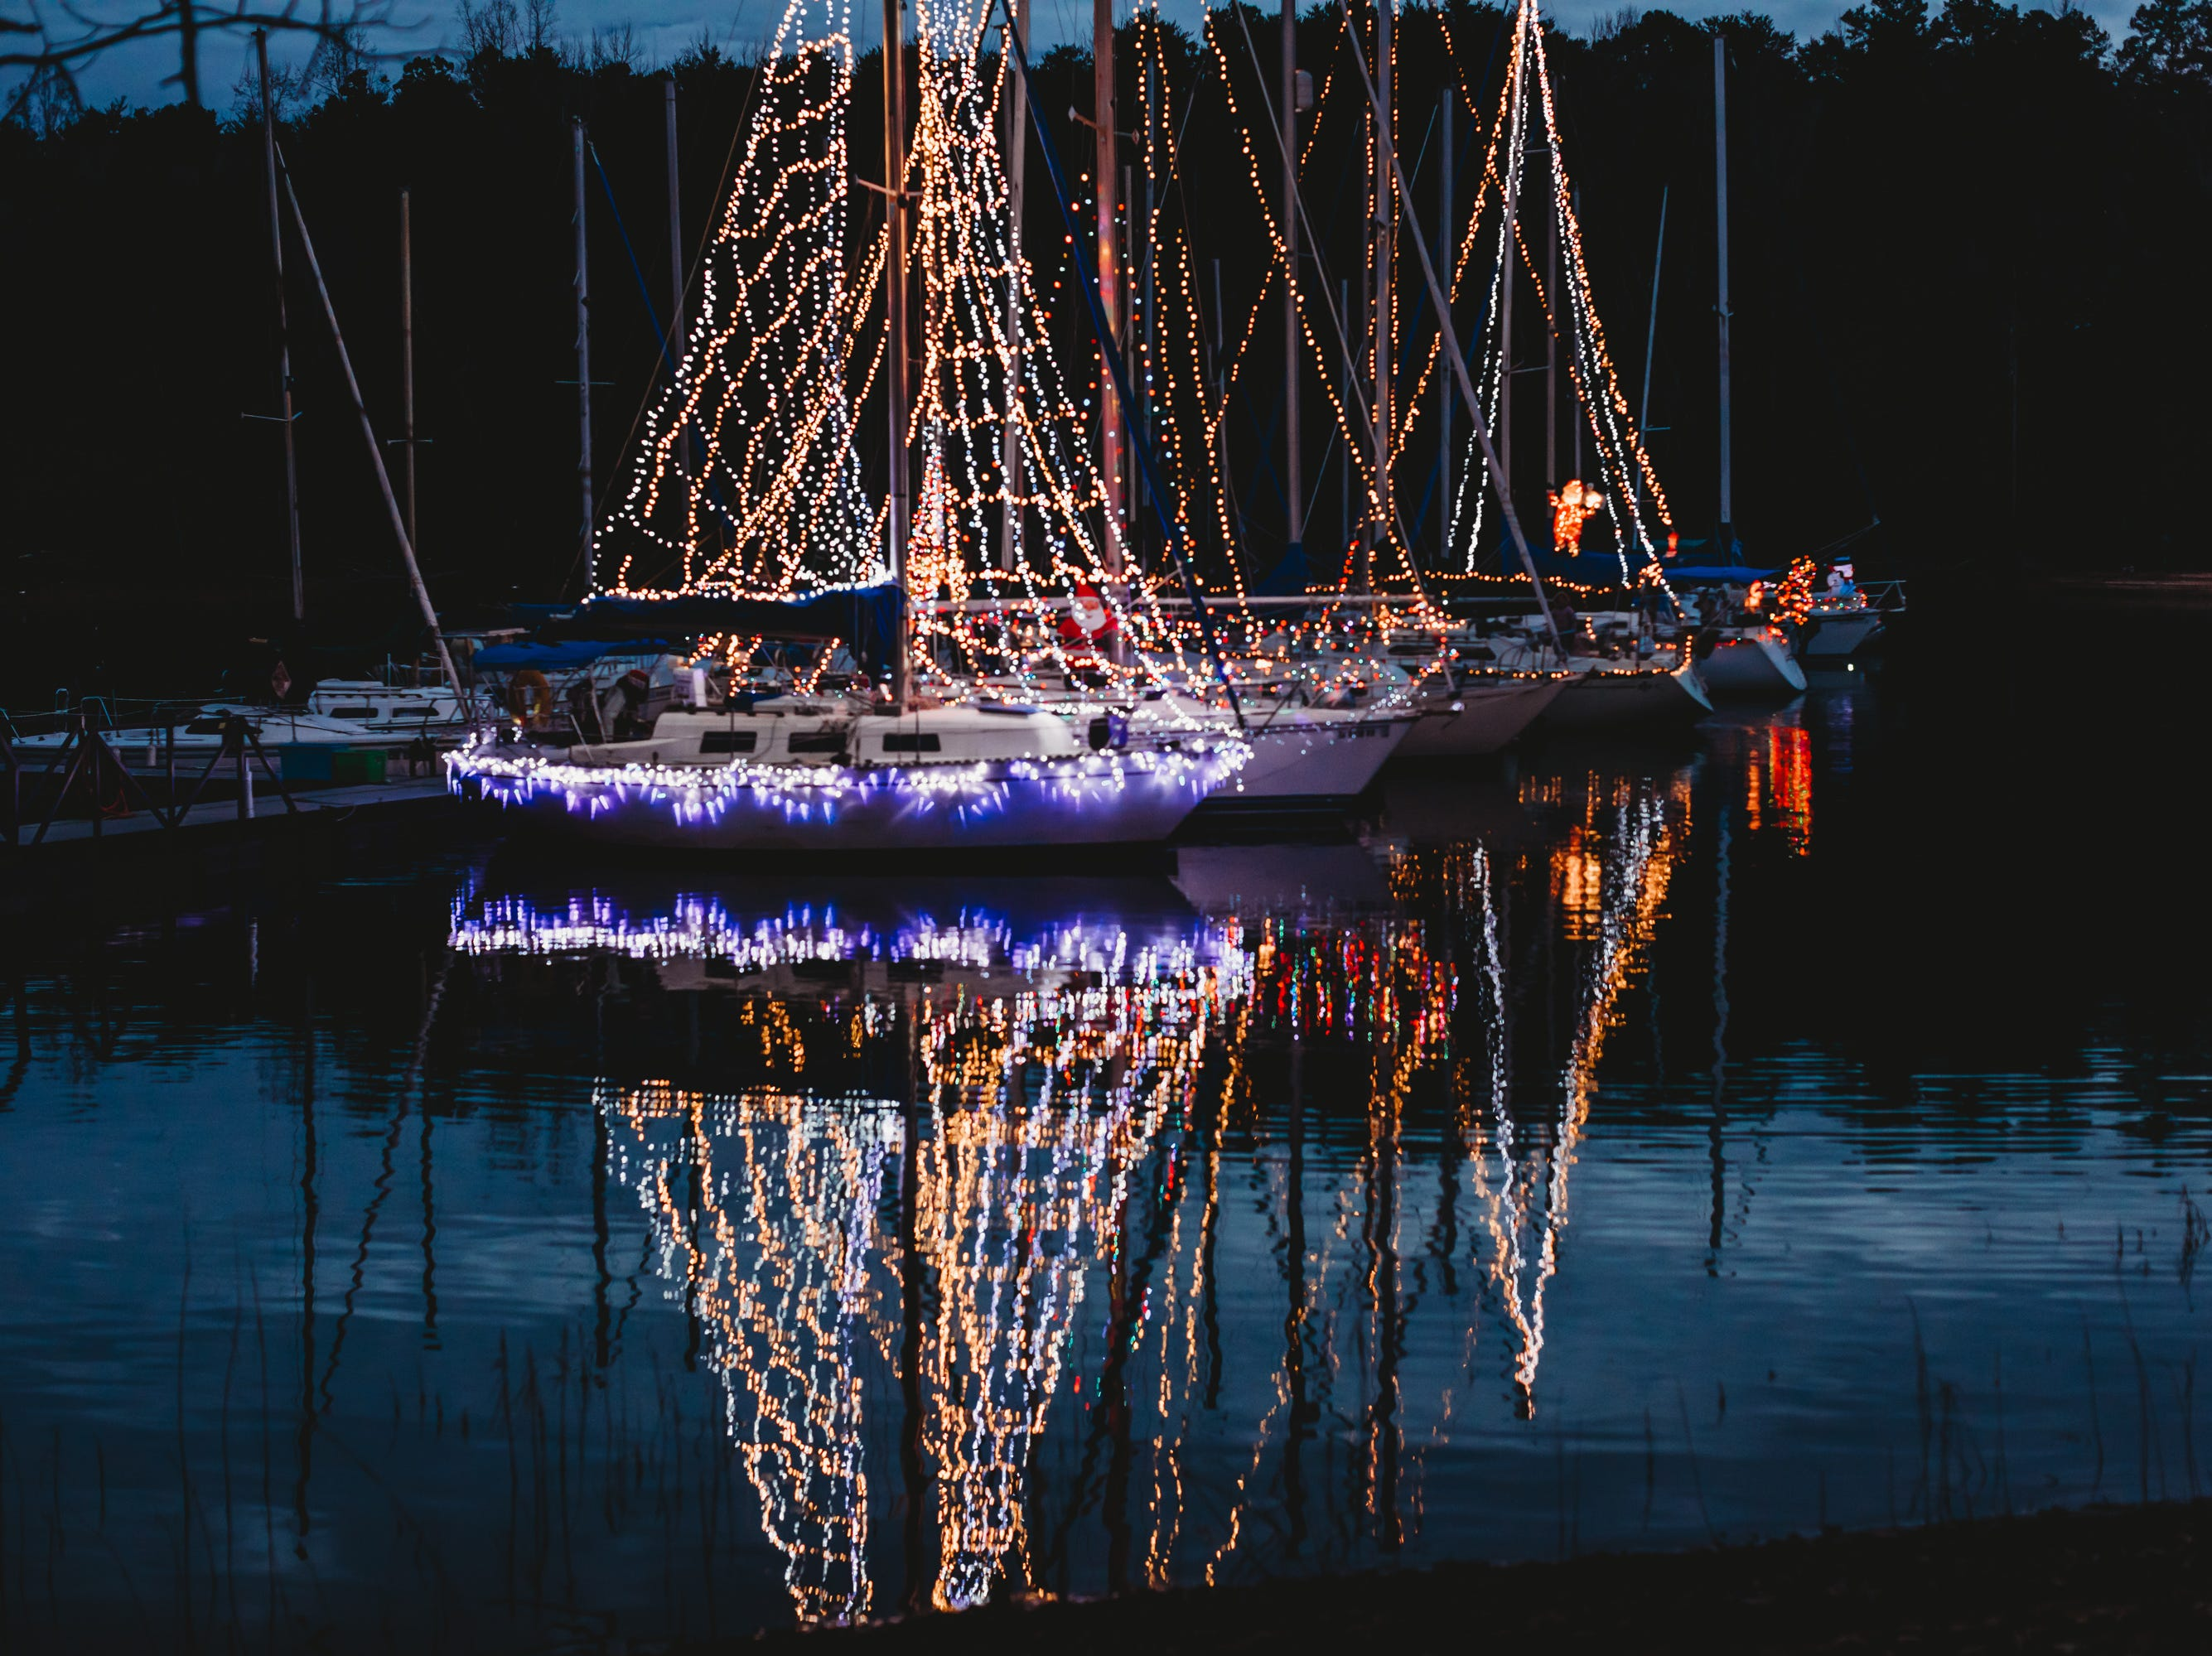 The Western Carolina Sailing Club held their Cruising Fleet Annual Parade of Lights on Lake Hartwell in Anderson Friday, December 7, 2018.